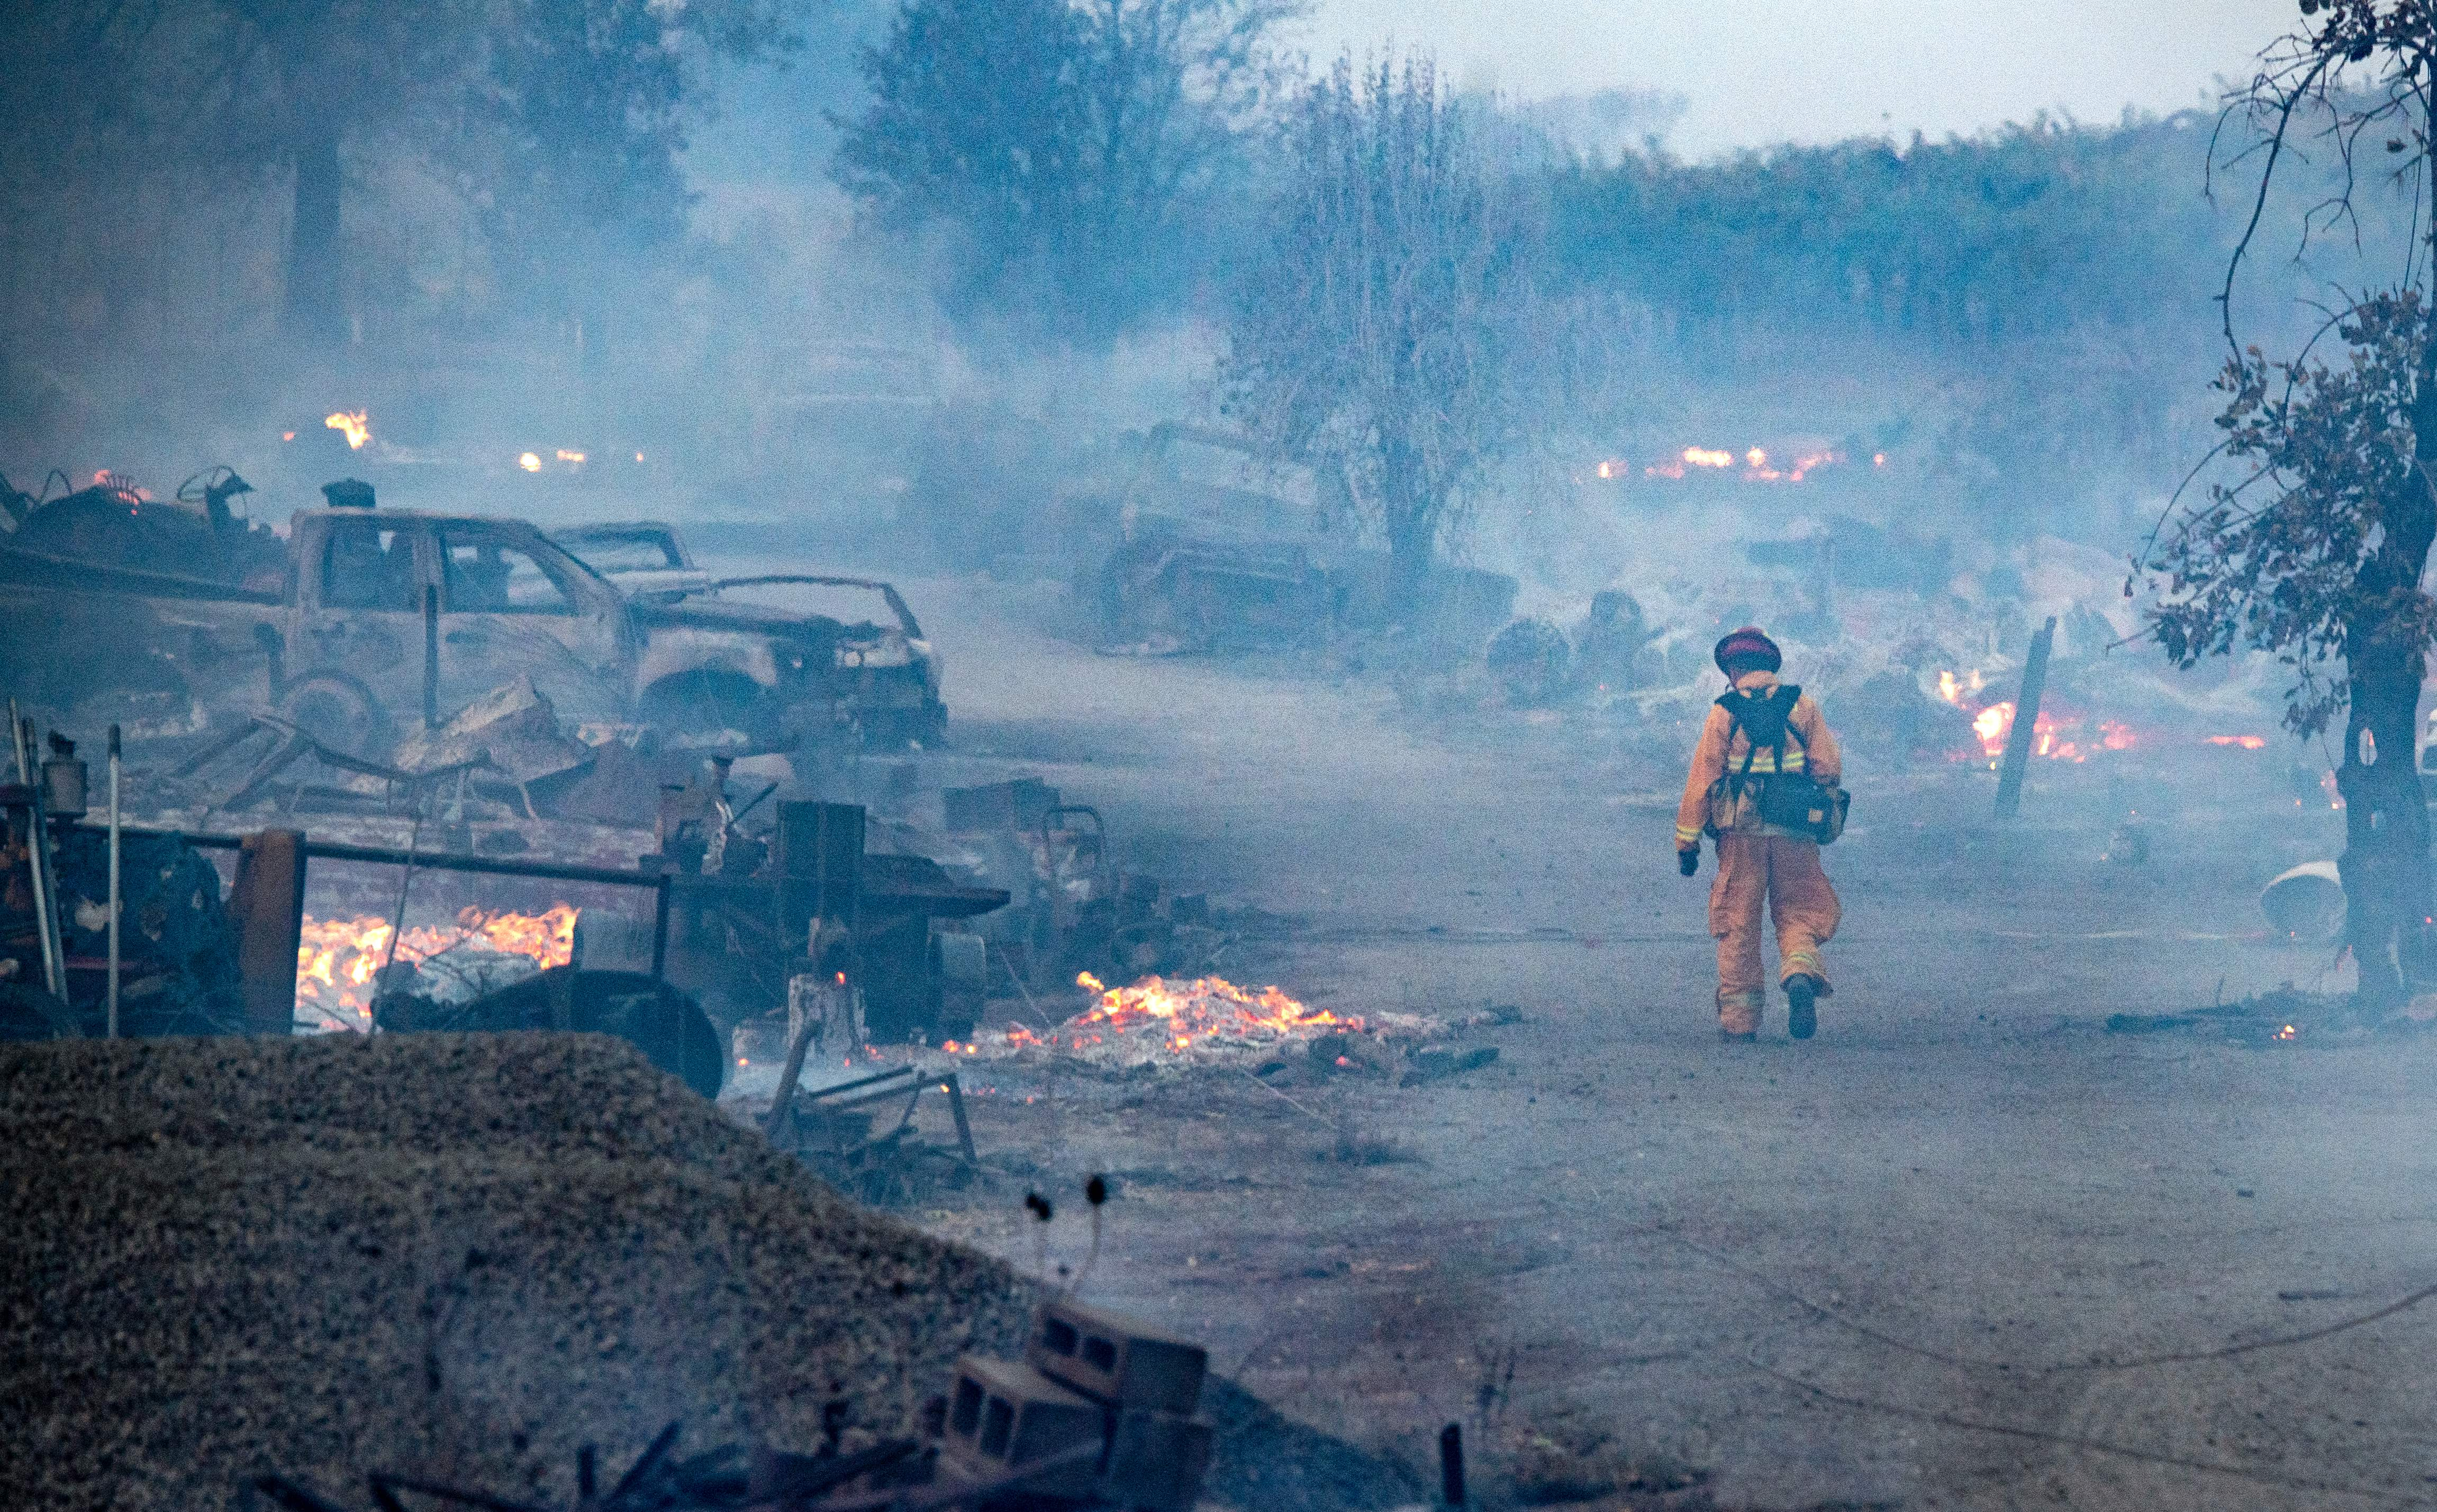 A rising number of US companies are flagging wildfire risk as suppression costs climb